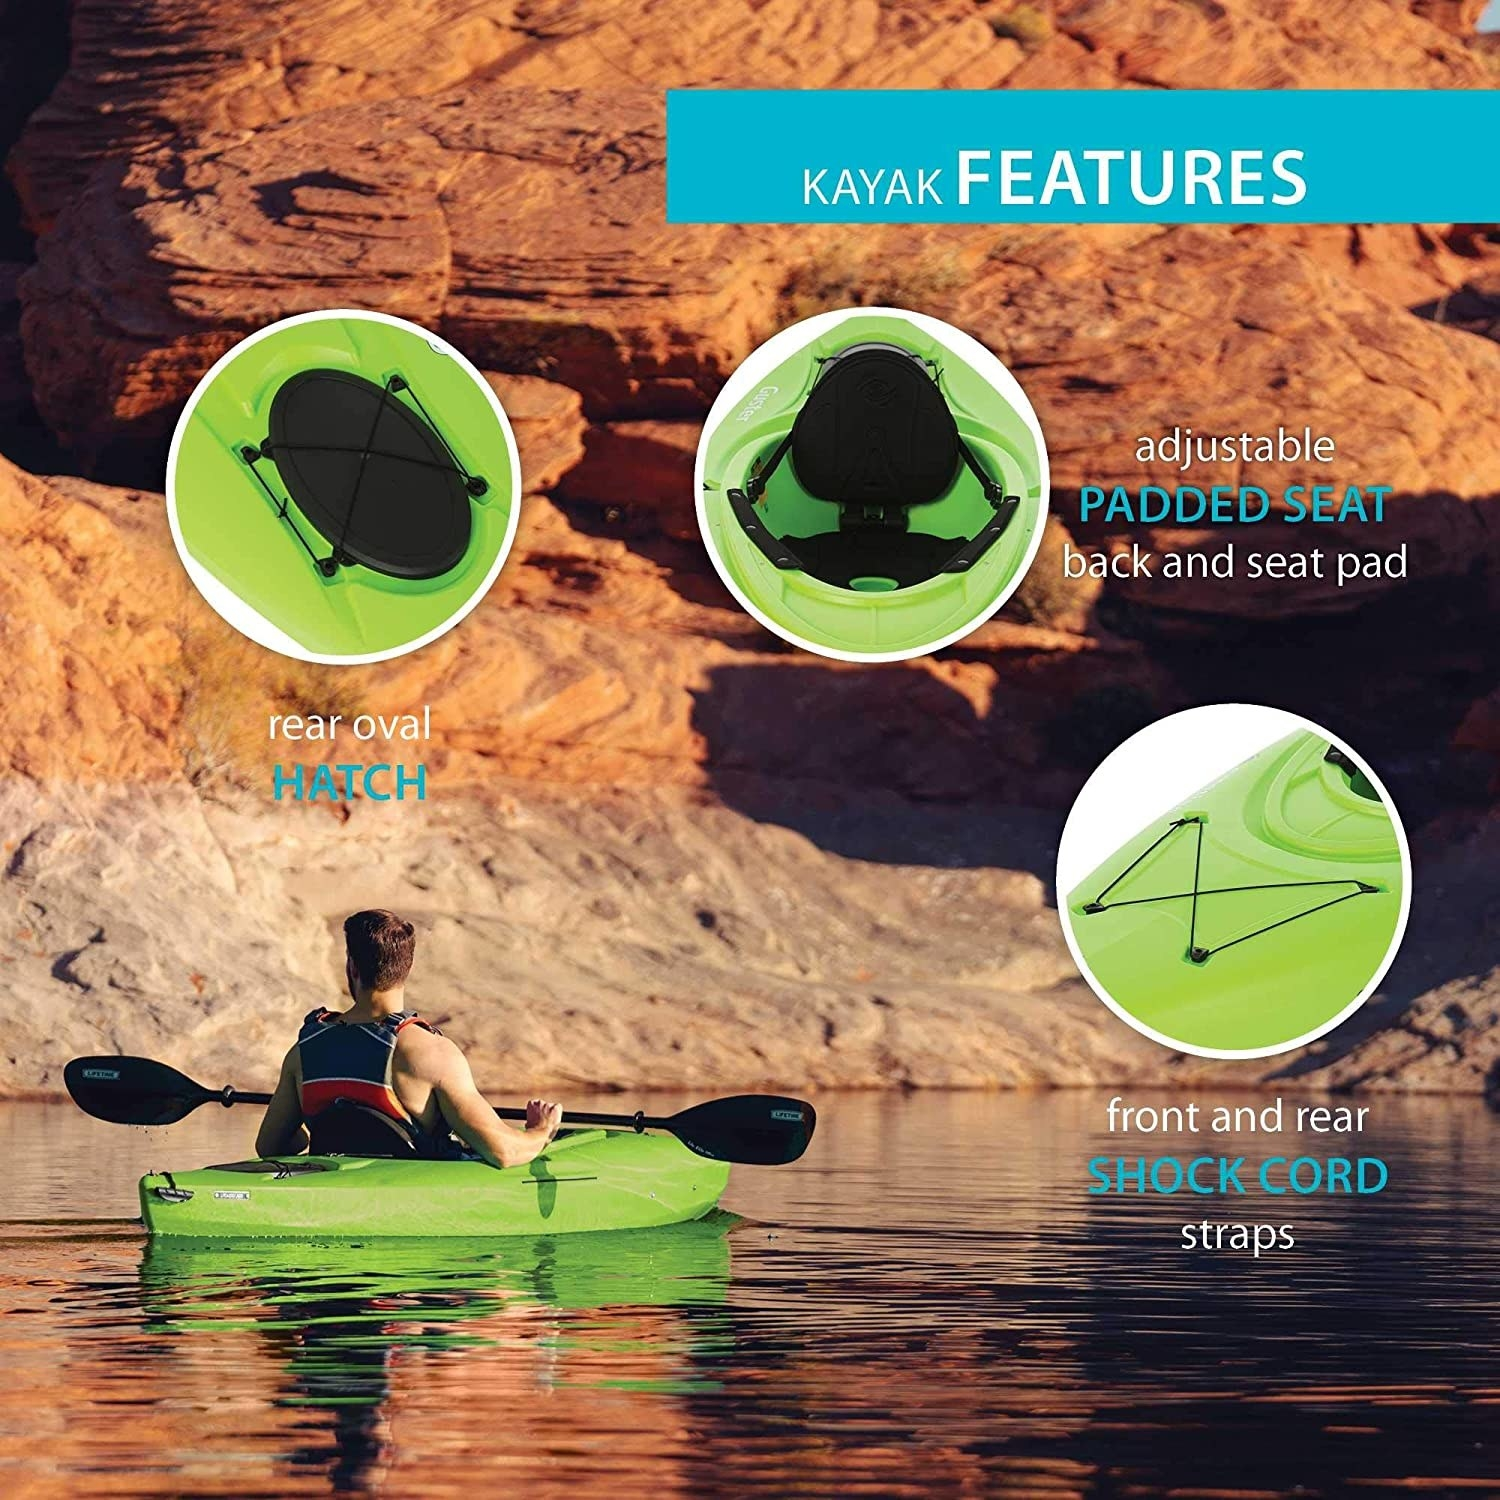 A graphic showing a person in the kayak and describing how the kayak also has shock cord straps and an oval hatch